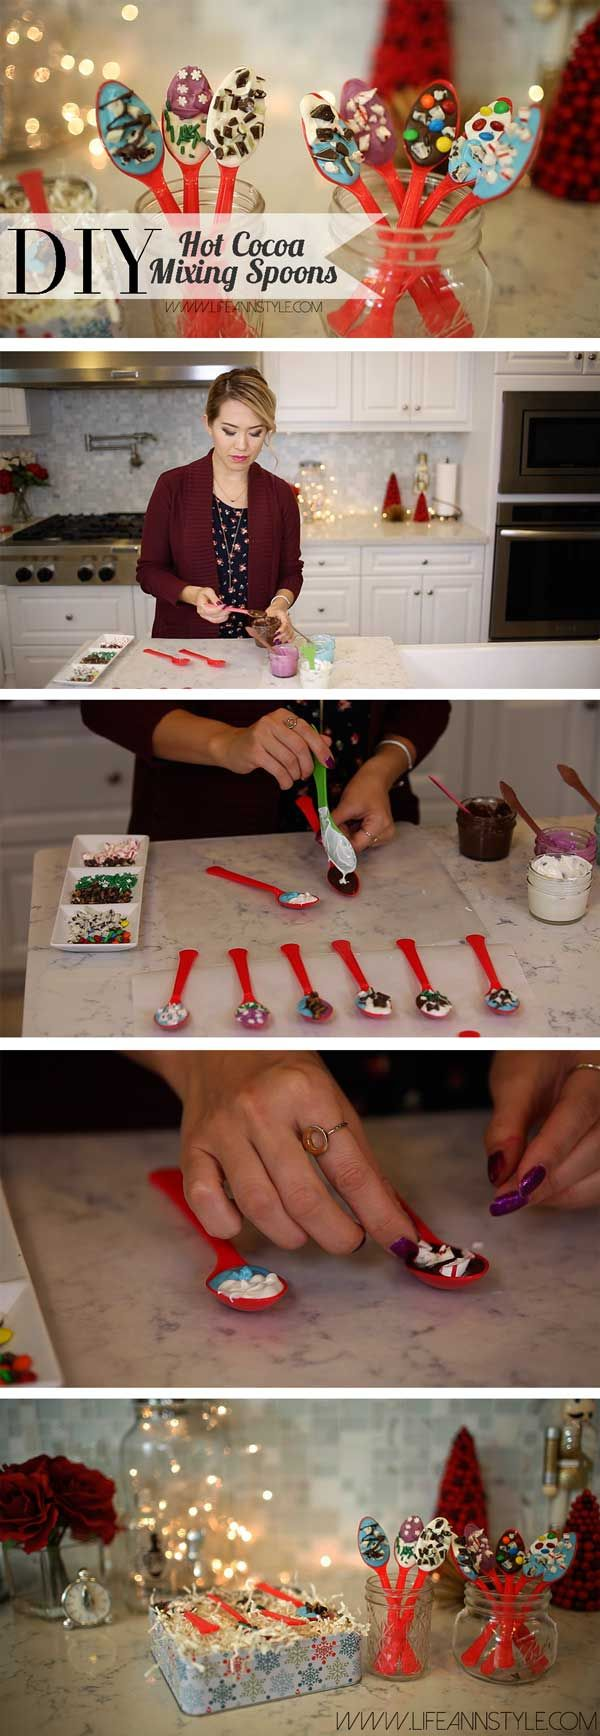 DIY Hot Chocolate Stir Spoons | Gift Ideas or party favorites!  | LifeAnnStyle.com